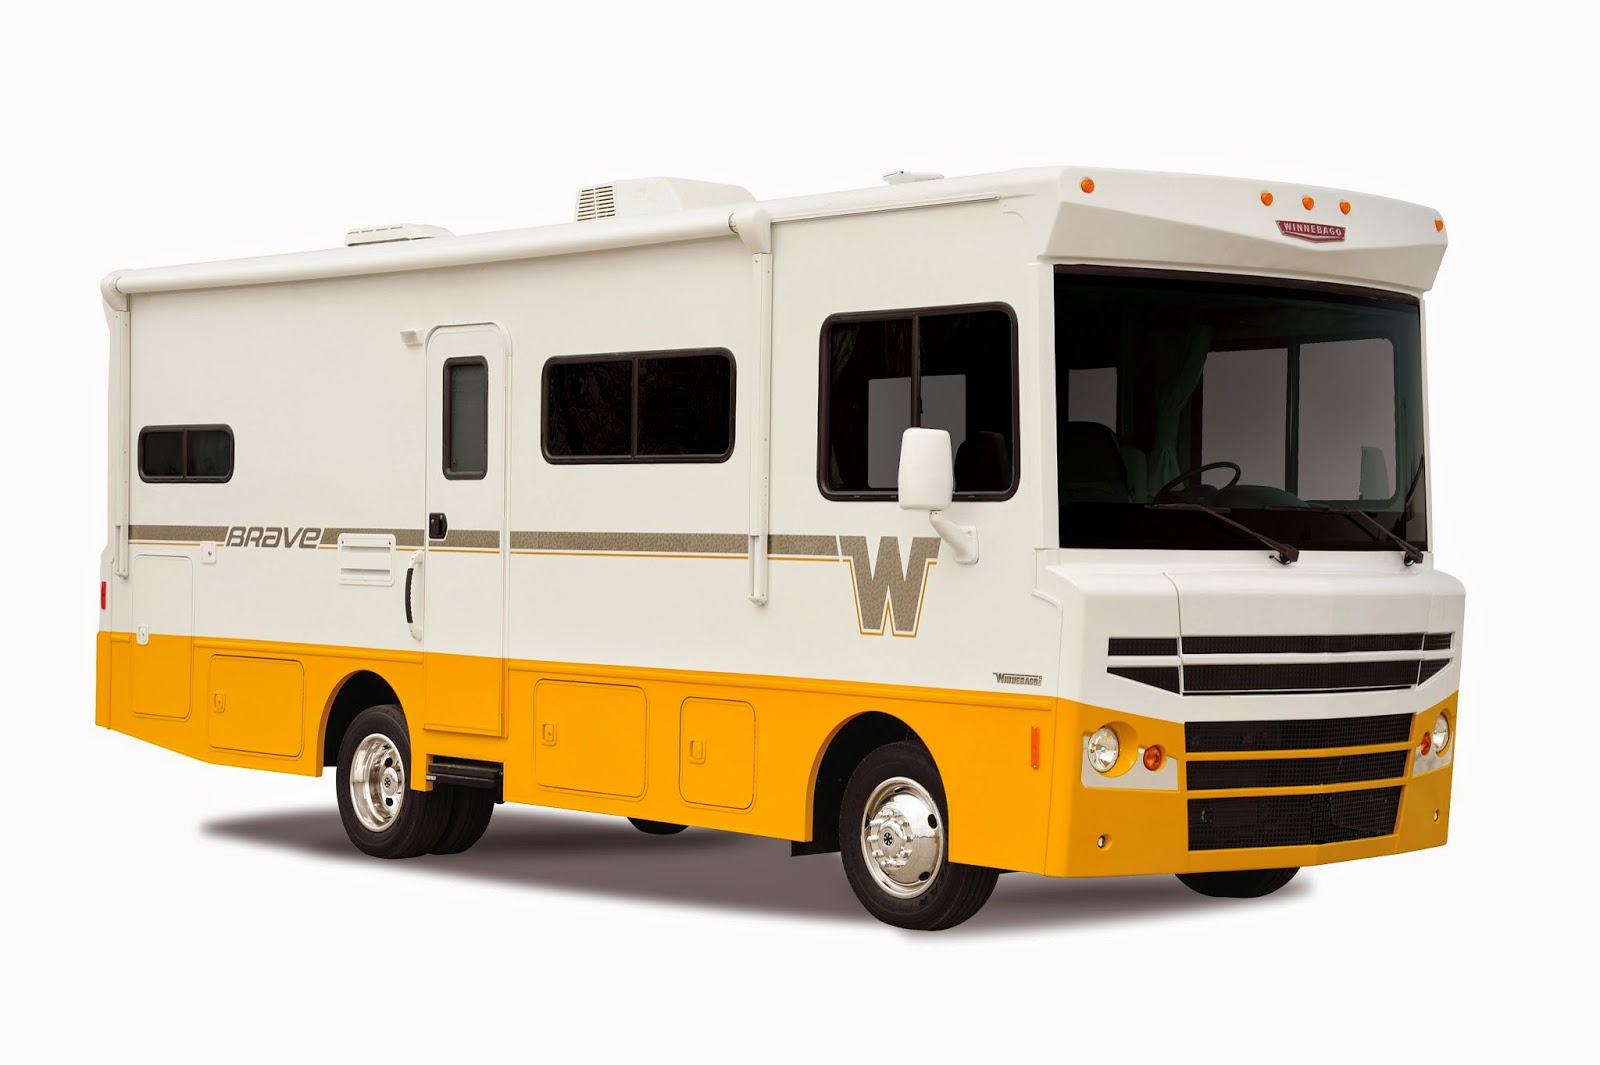 Forex trading from motorhome